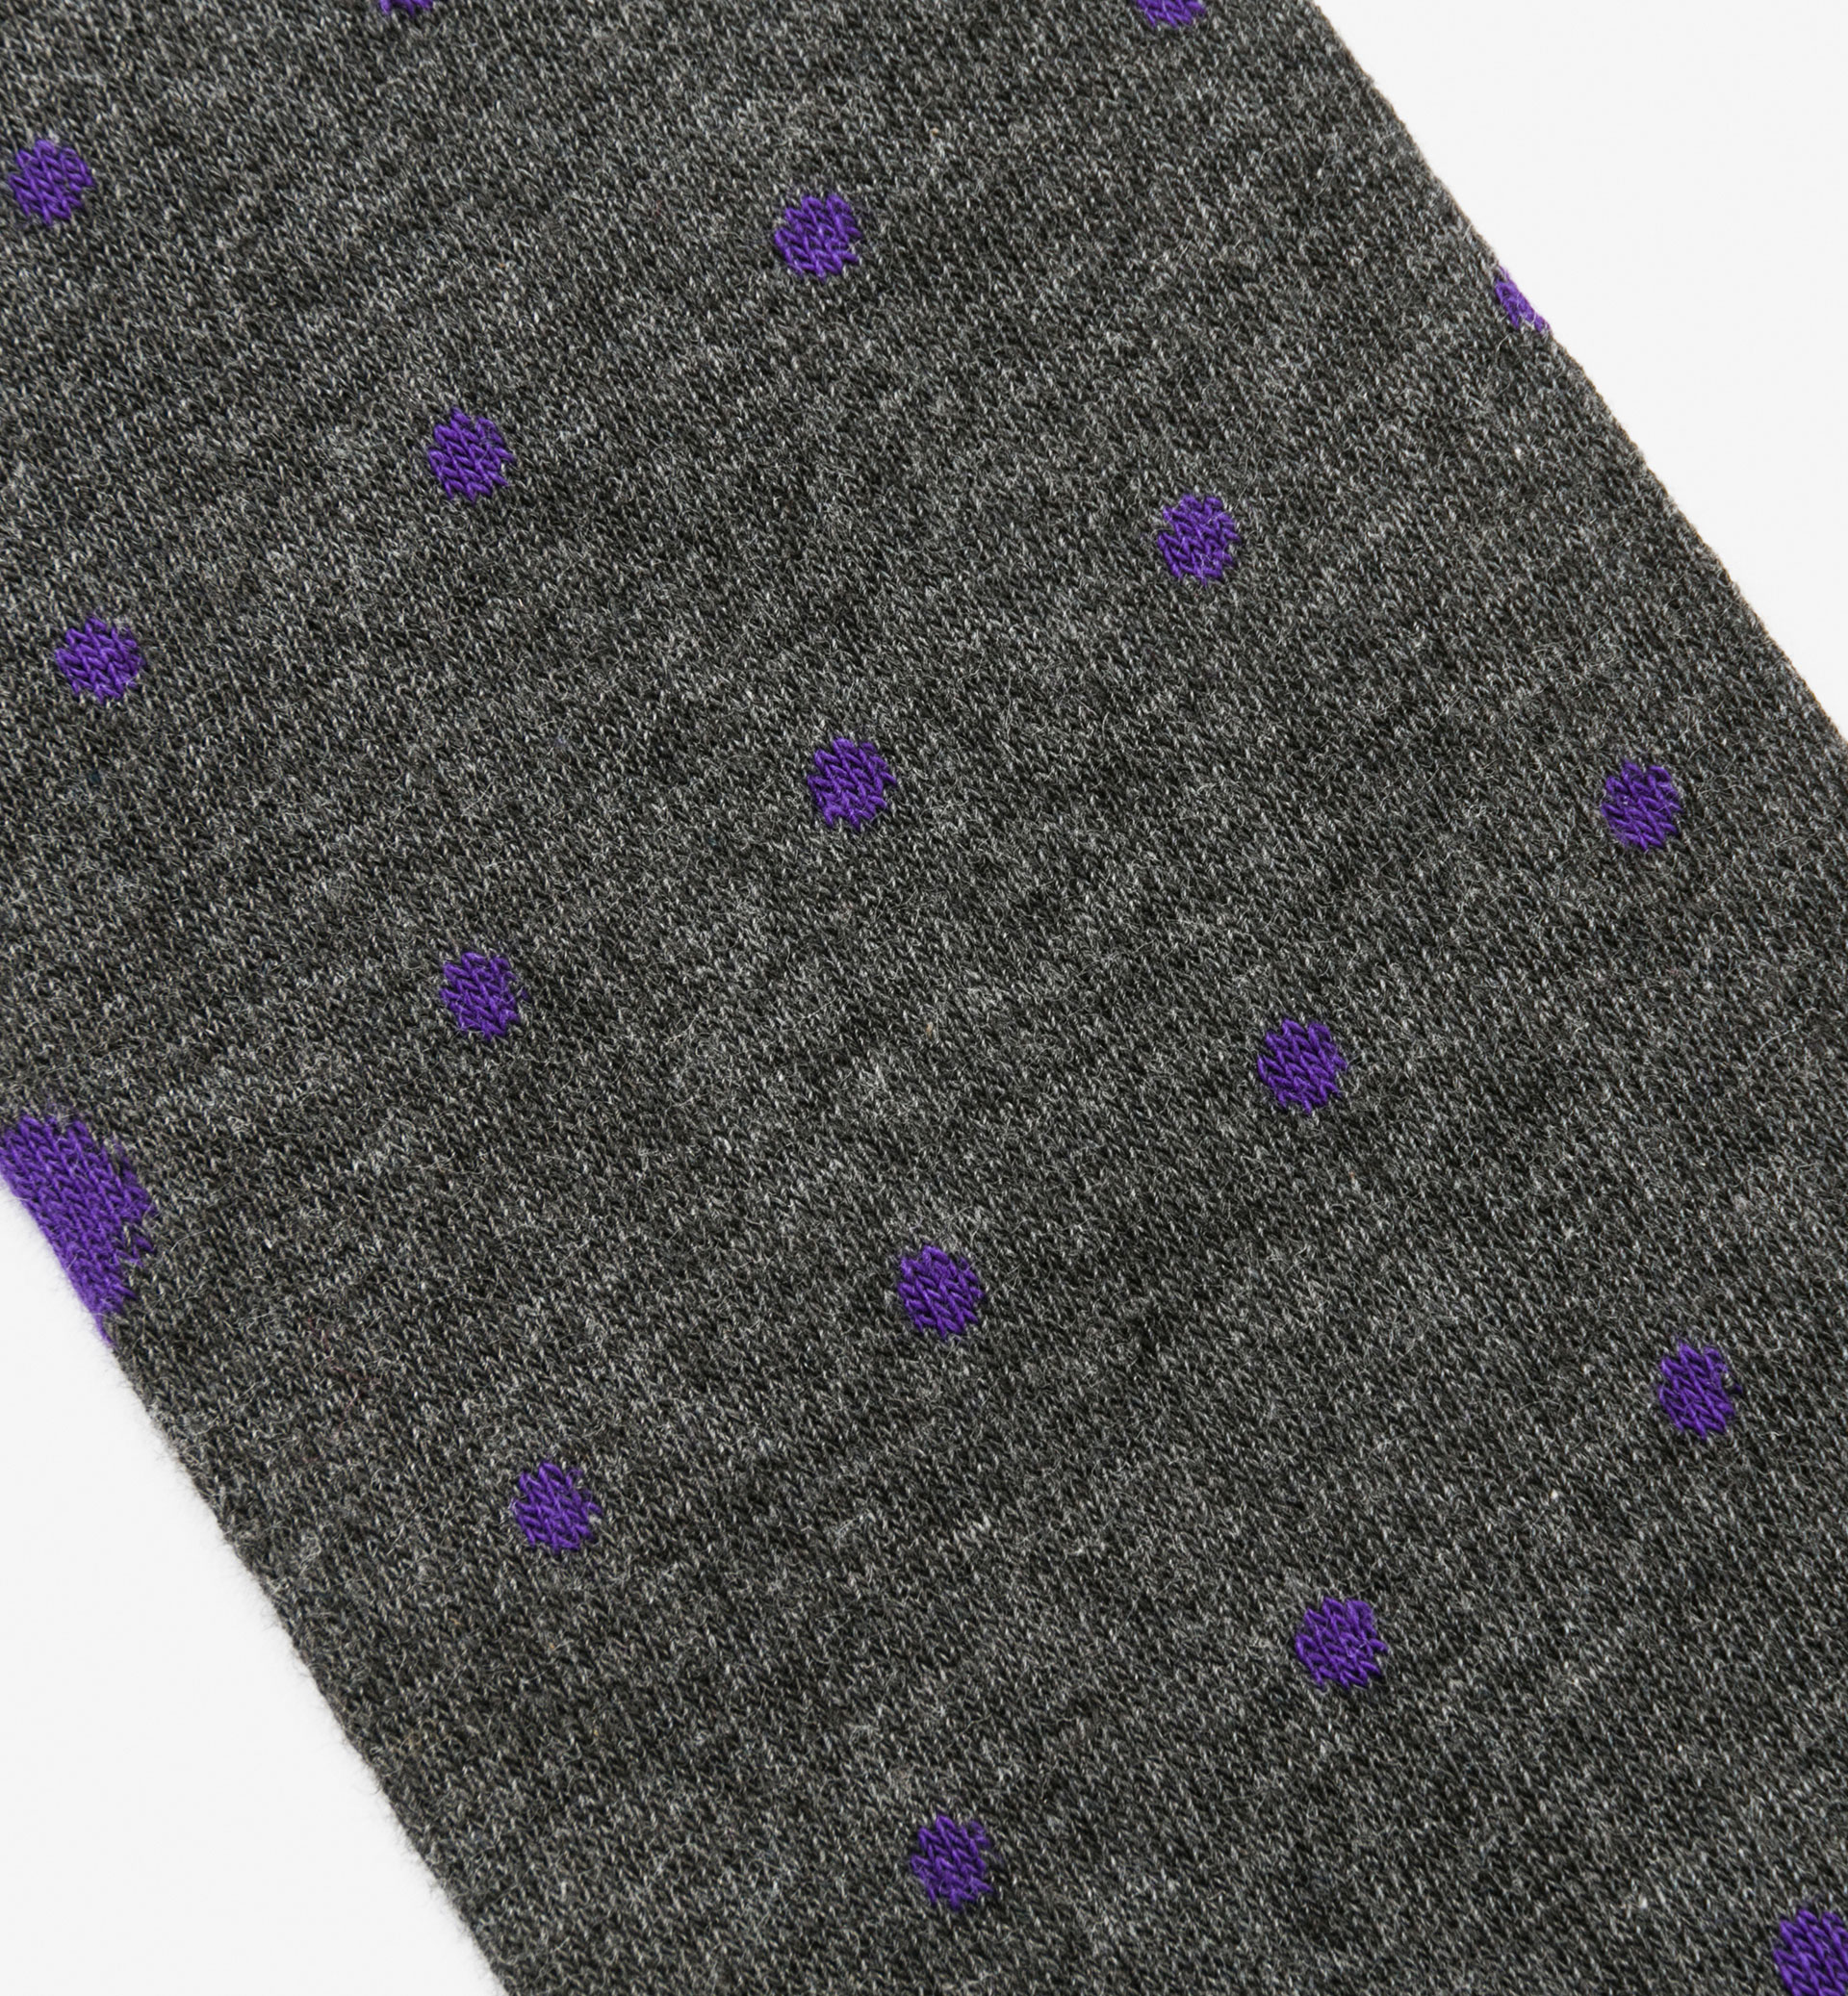 LIMITED EDITION POLKA DOT DETAIL SOCKS